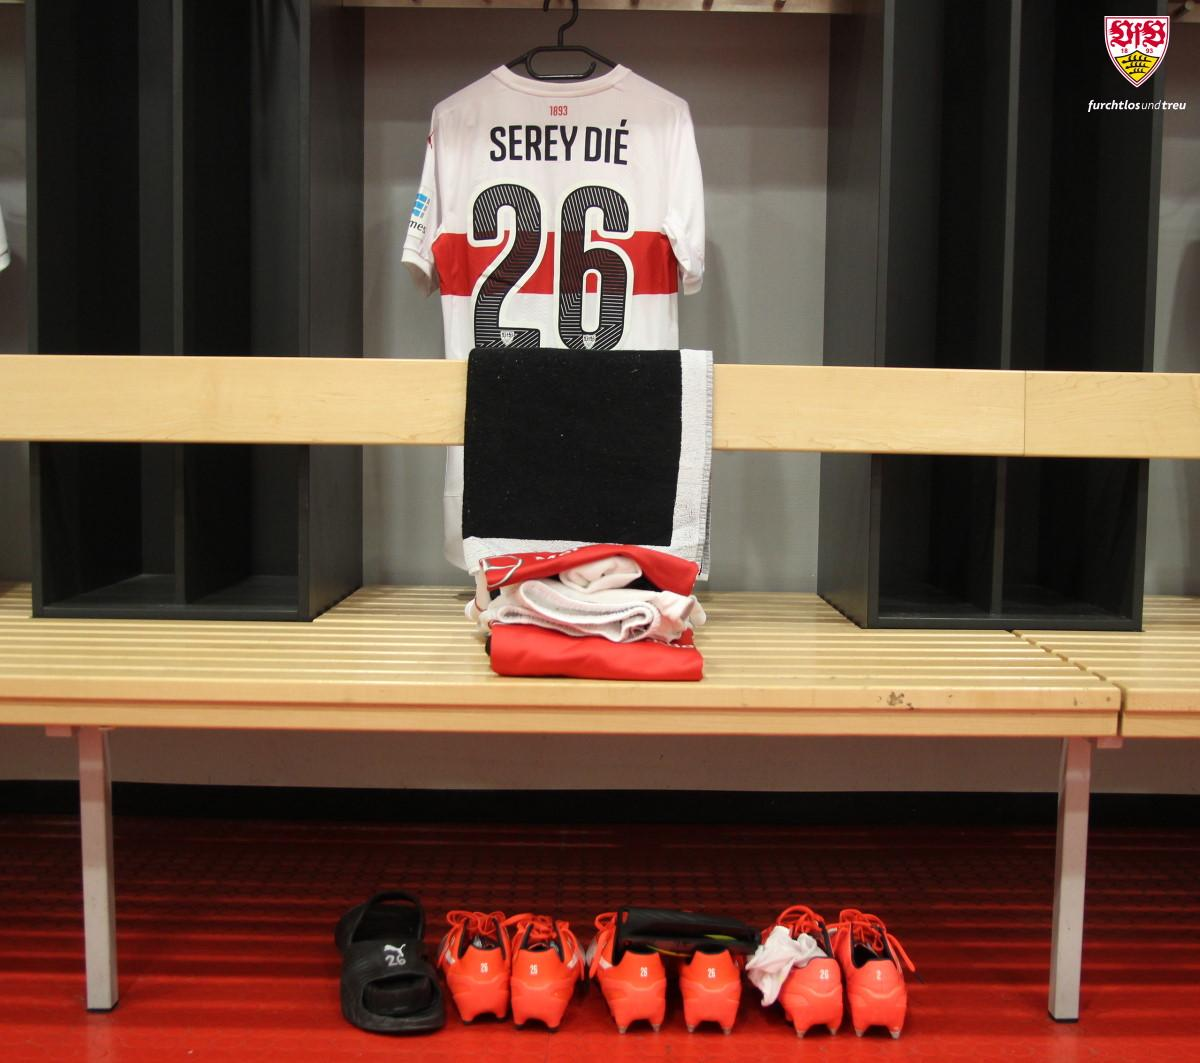 Welcome back, #SereyDié! #VfBSGE #Comeback<br>http://pic.twitter.com/HJkwLkZA7x